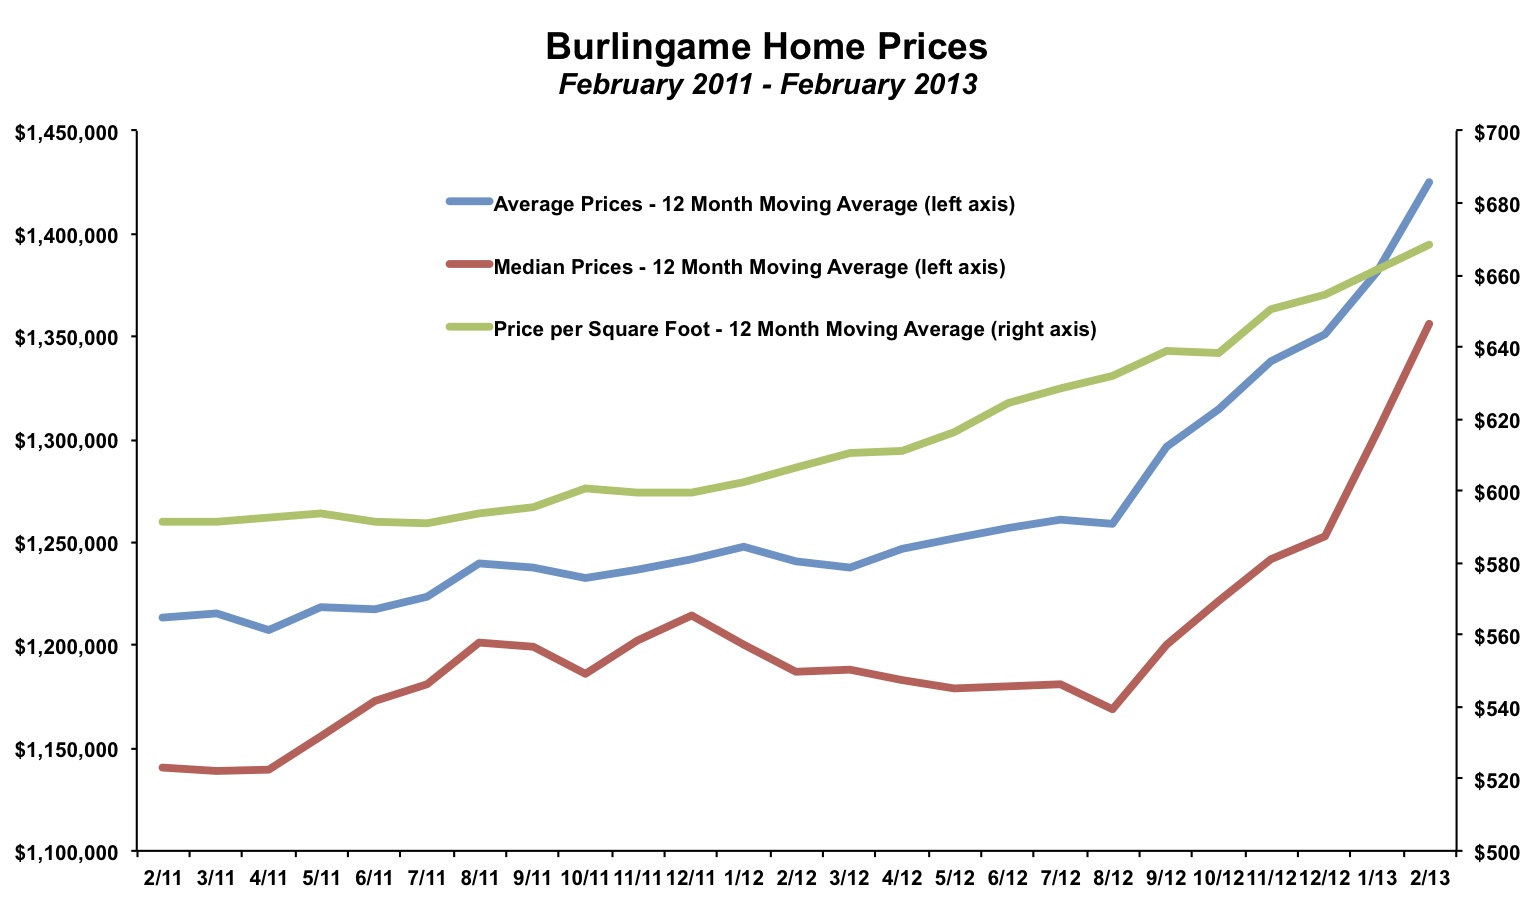 Burlingame Home Prices February 2013